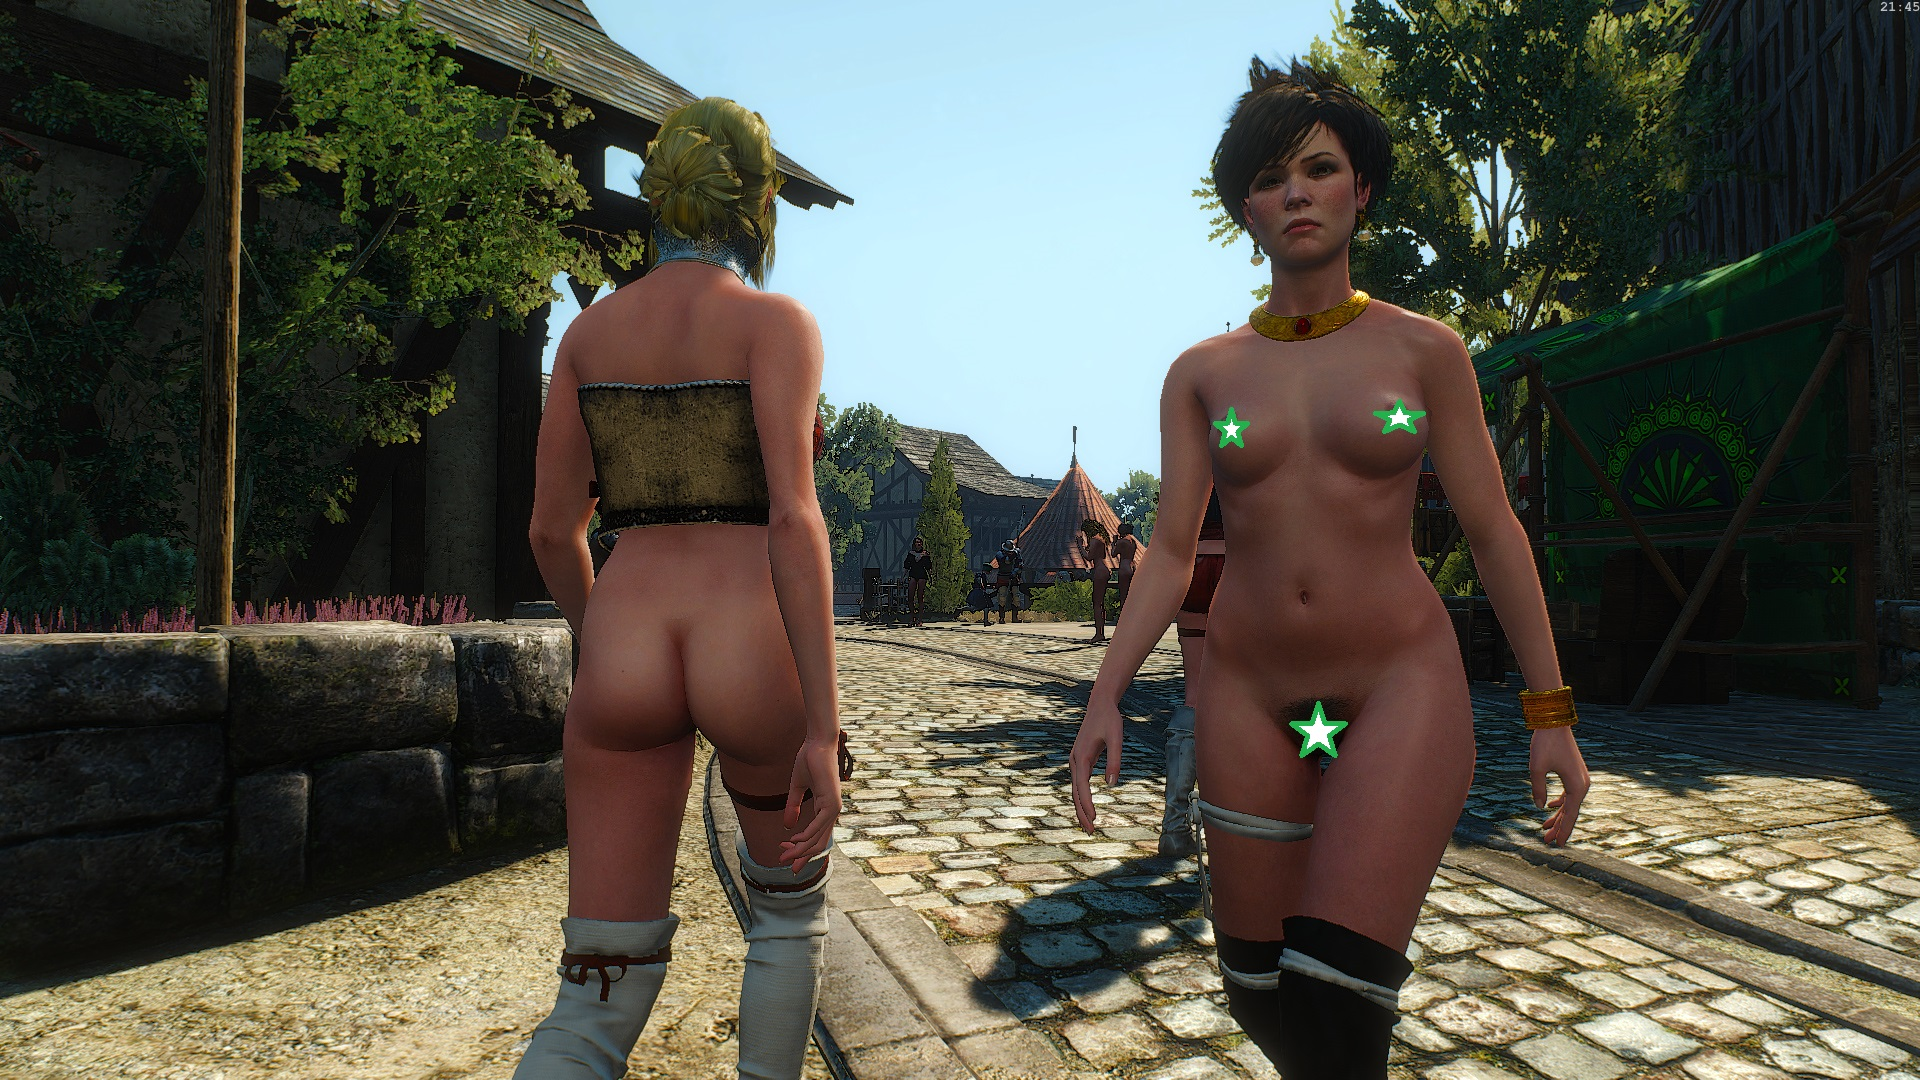 The witcher 3 nudes of girls sexy vids